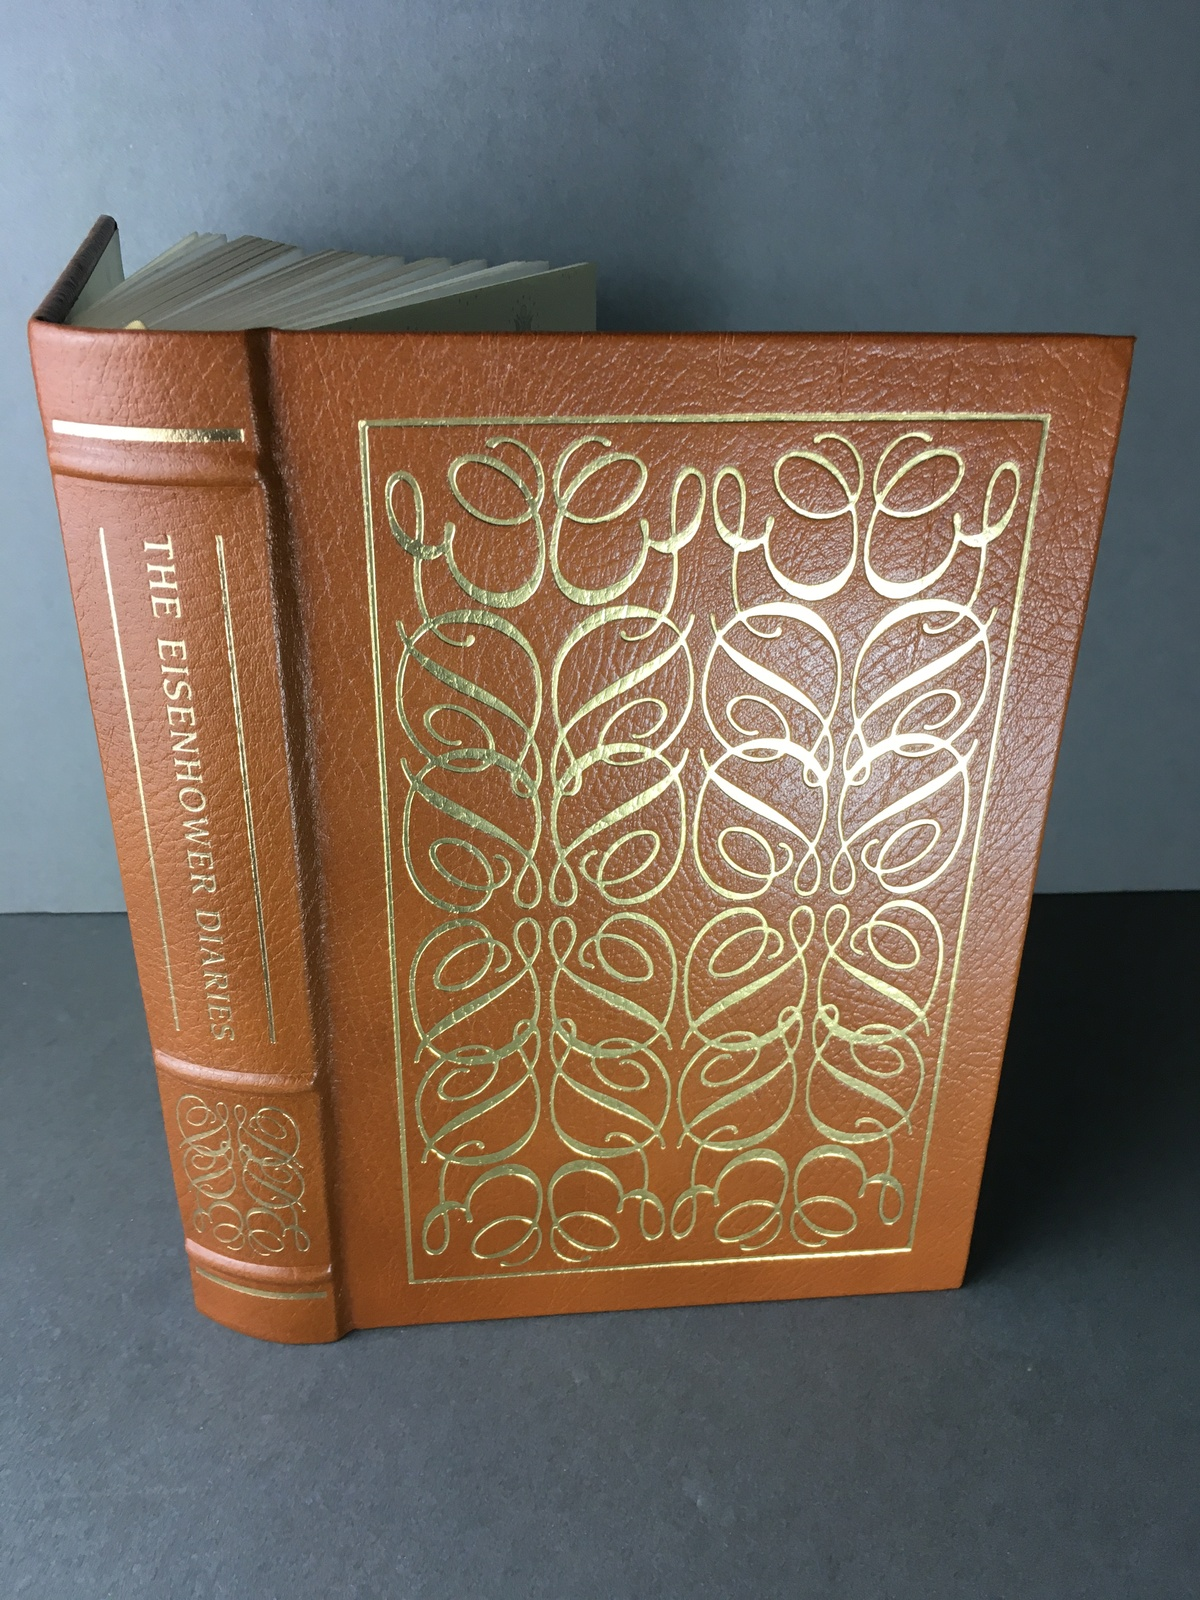 Primary image for The Eisenhower Diaries, R Ferrell ed.1989 Easton Press Library of The Presidents